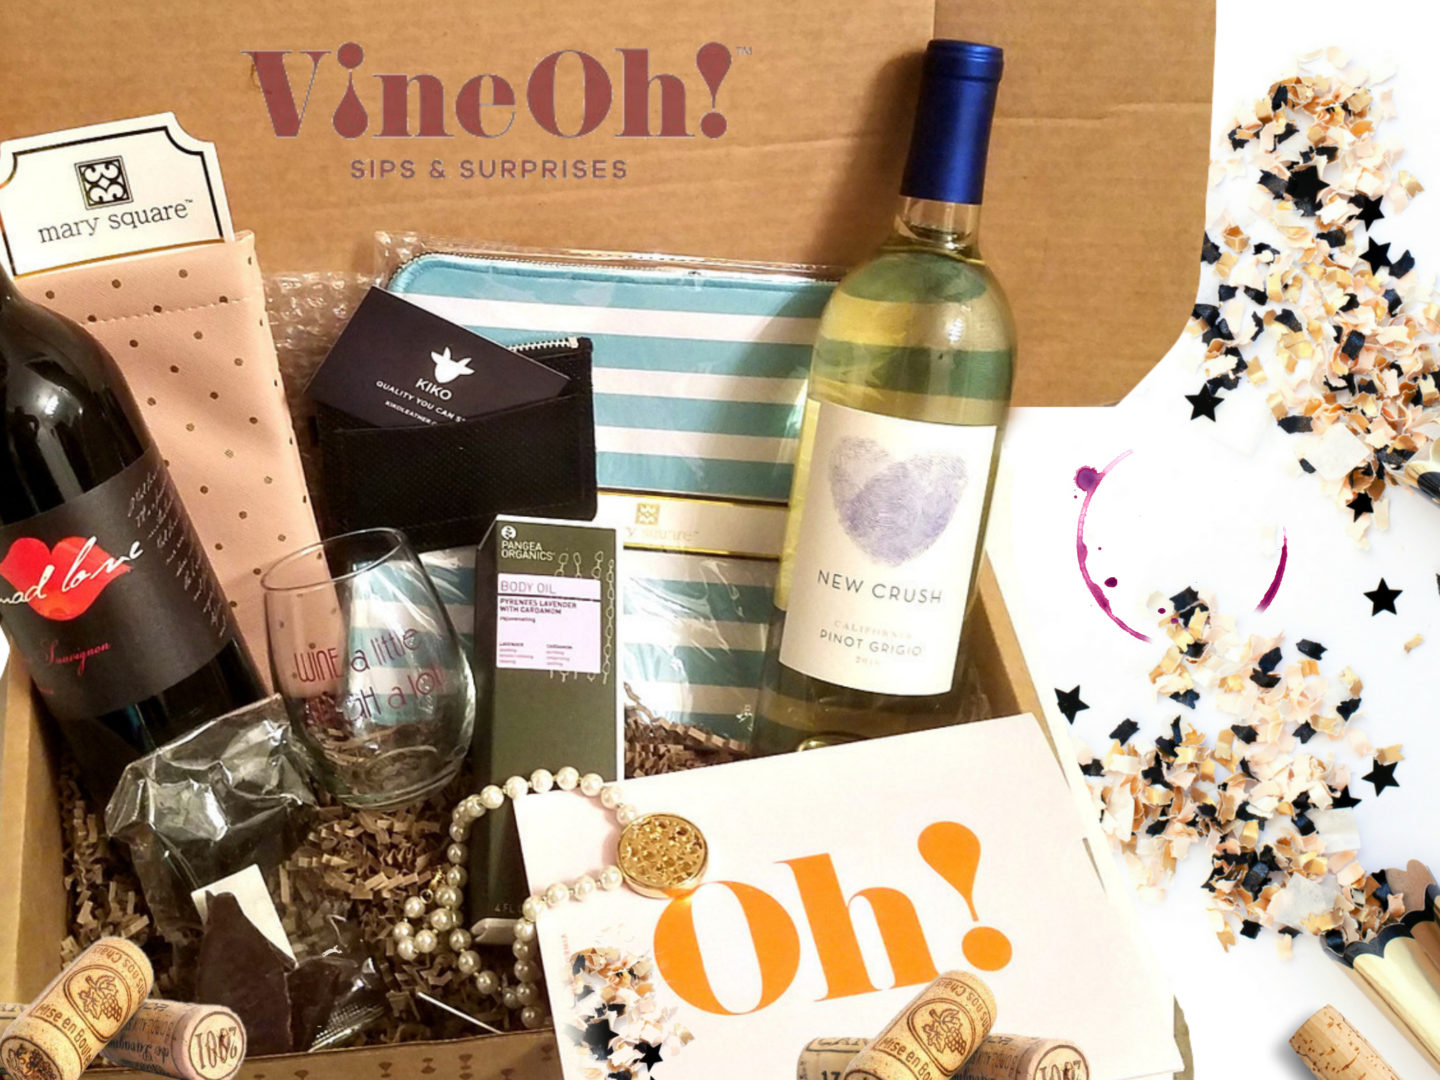 The Best wine box subscription by Vine Oh wine and beauty after forty